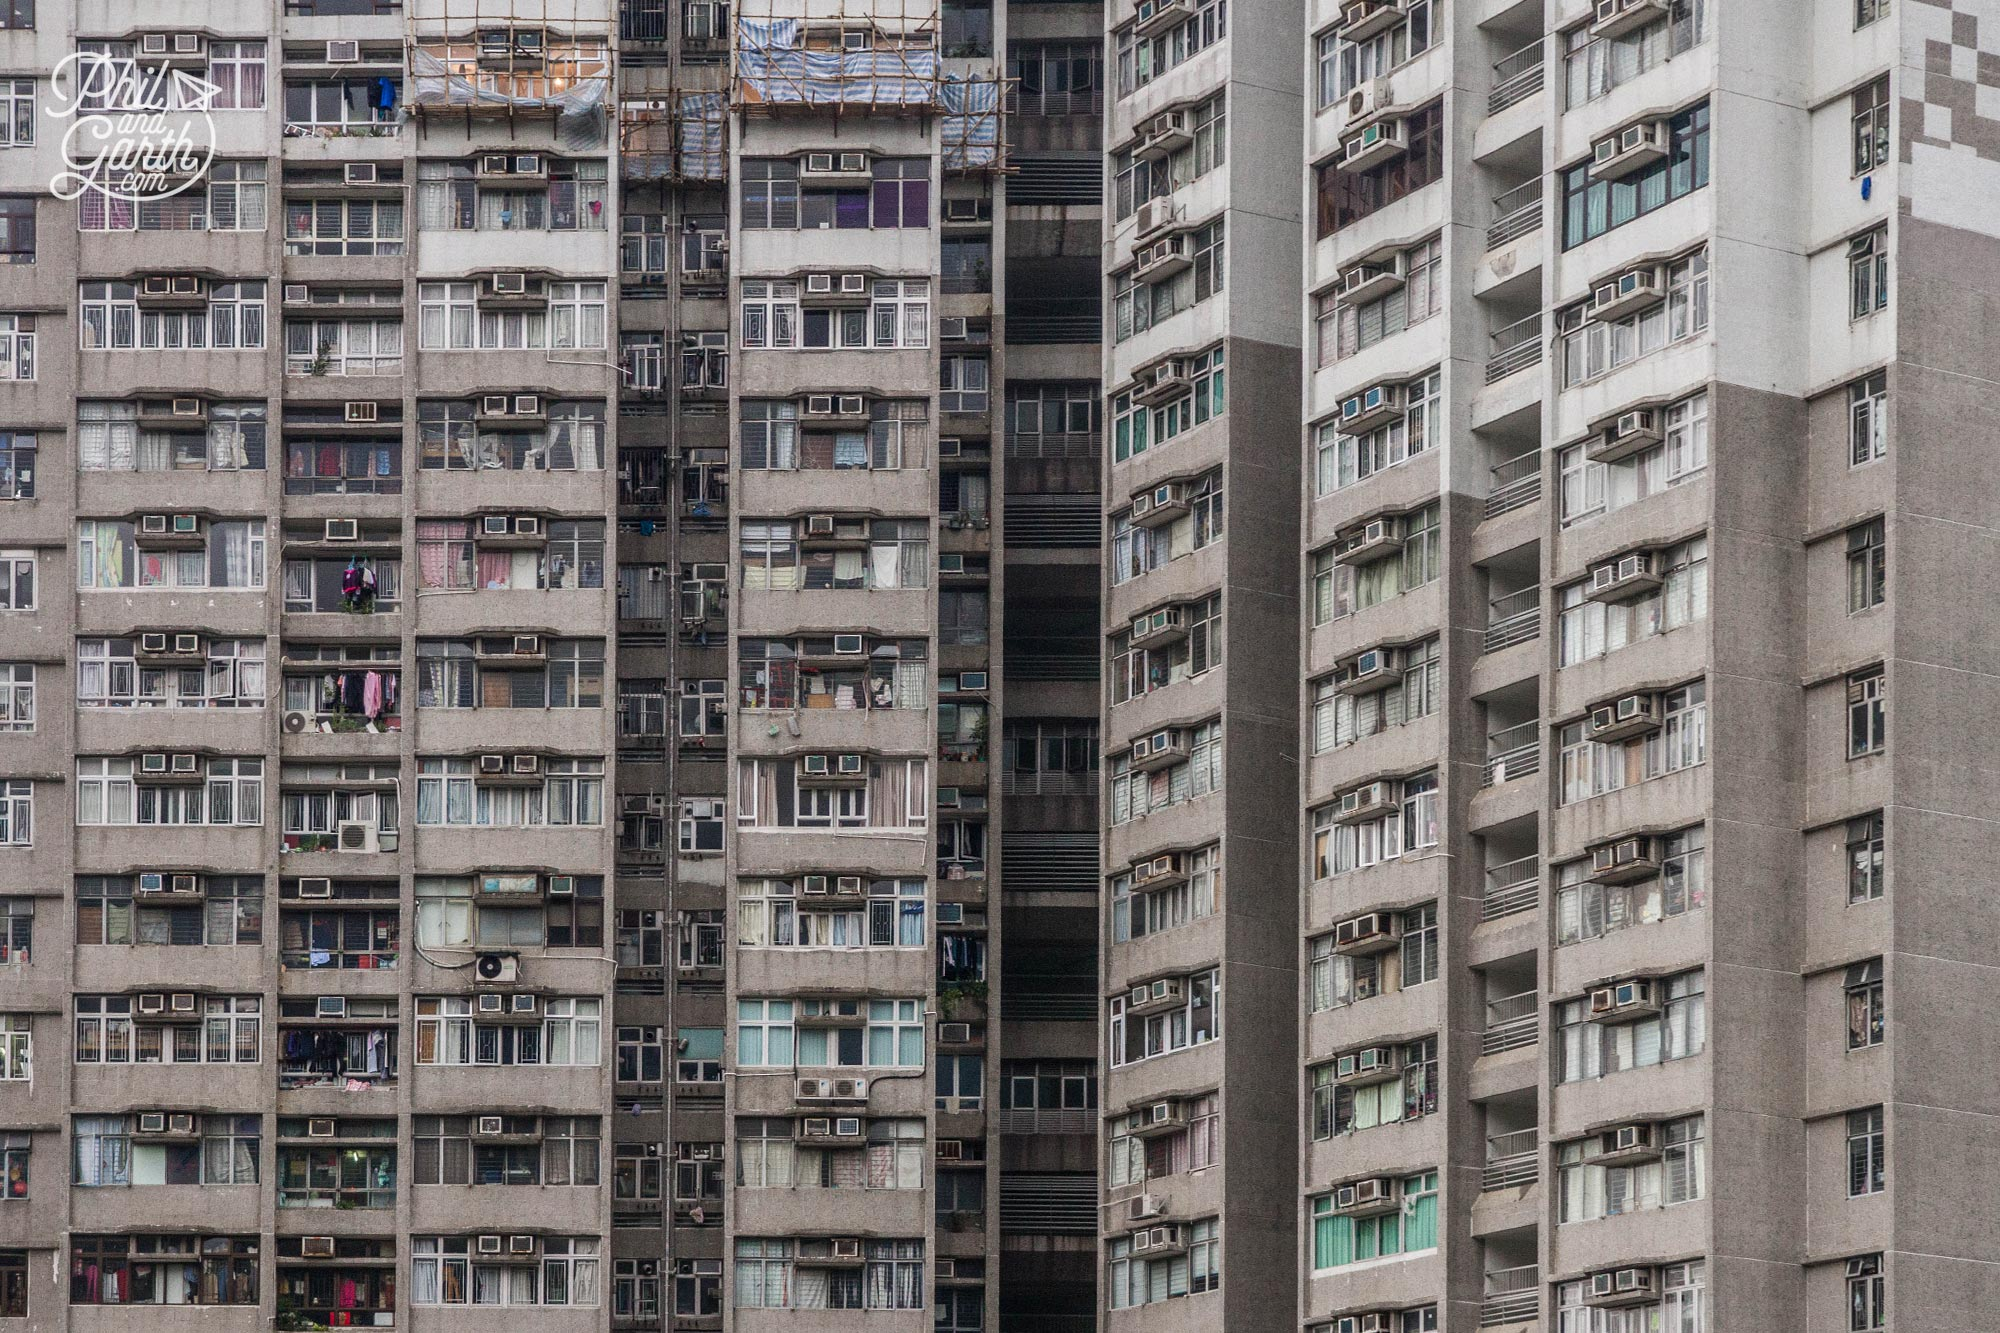 Hundreds of windows are dotted with air conditioning units